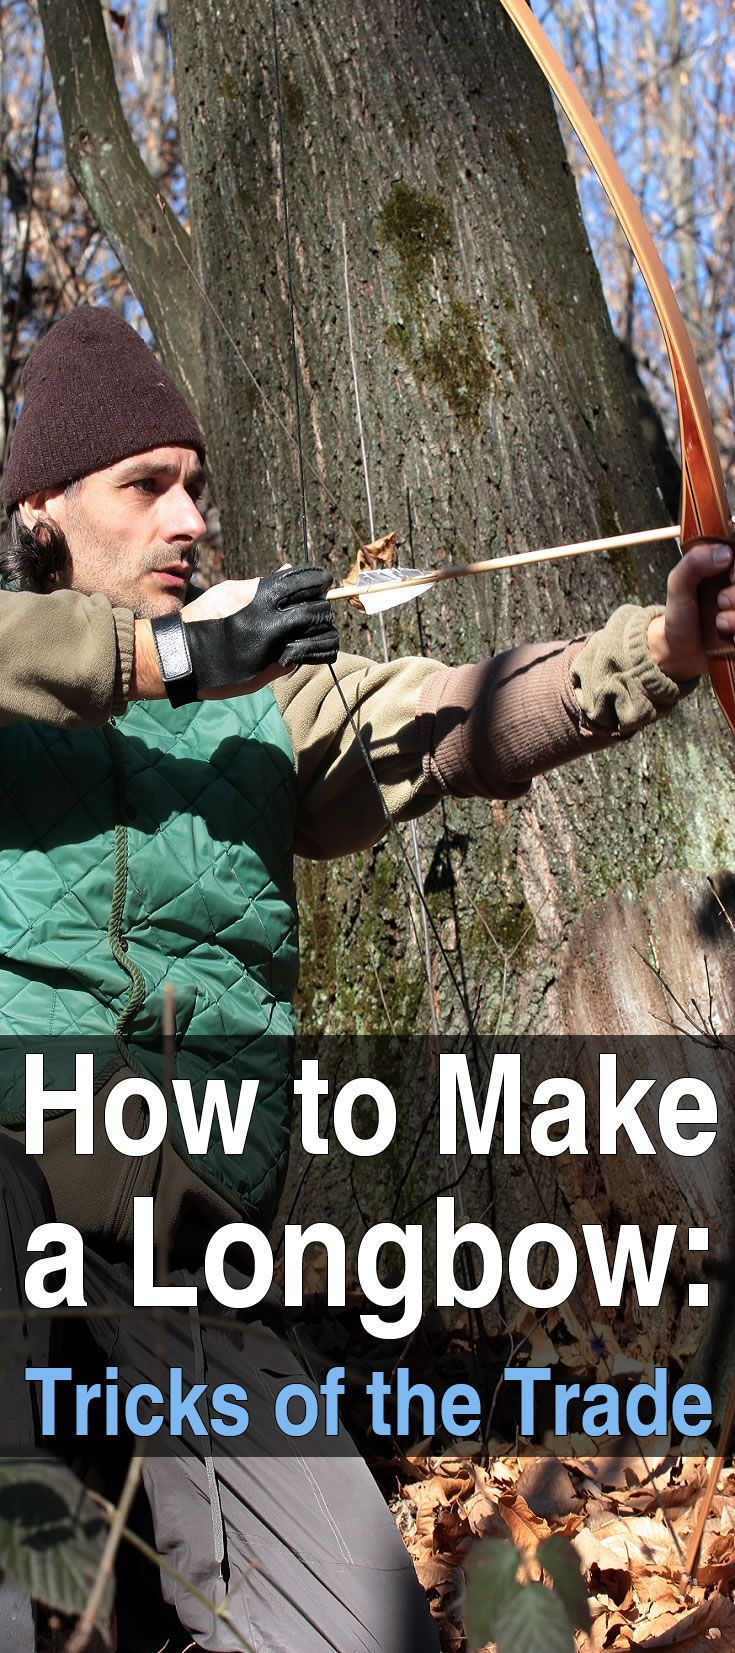 If you like making your own weapons, or just enjoy woodworking in general, you should check out this guide to making your own longbow.